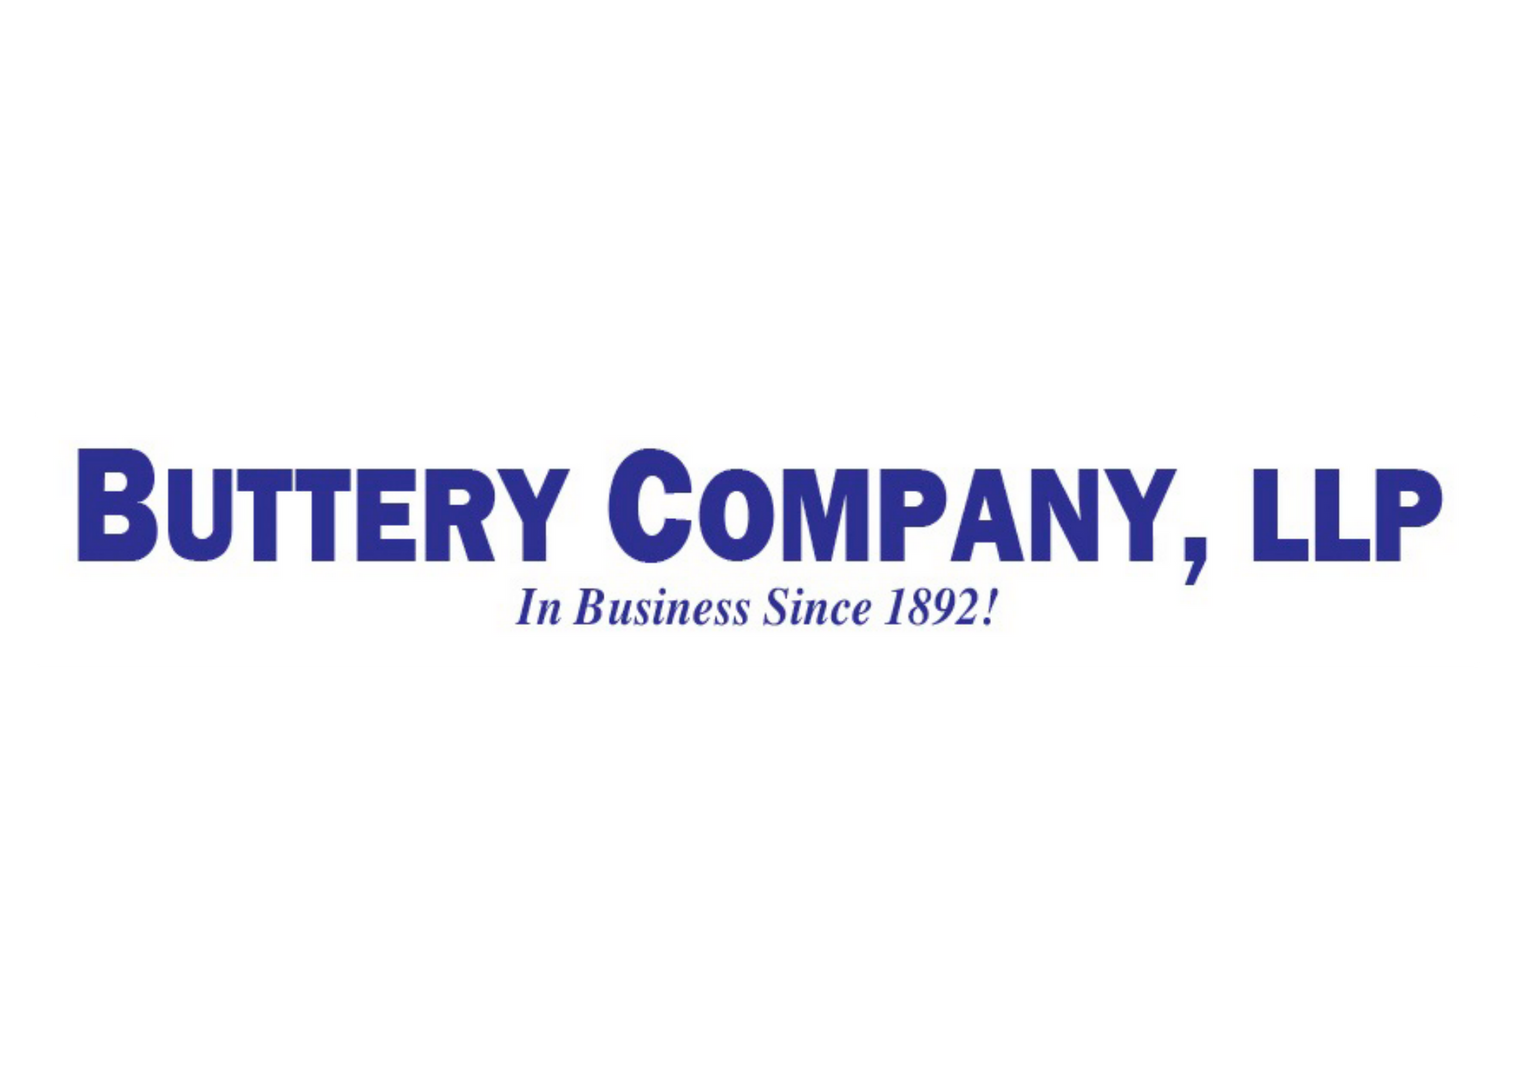 Buttery Company